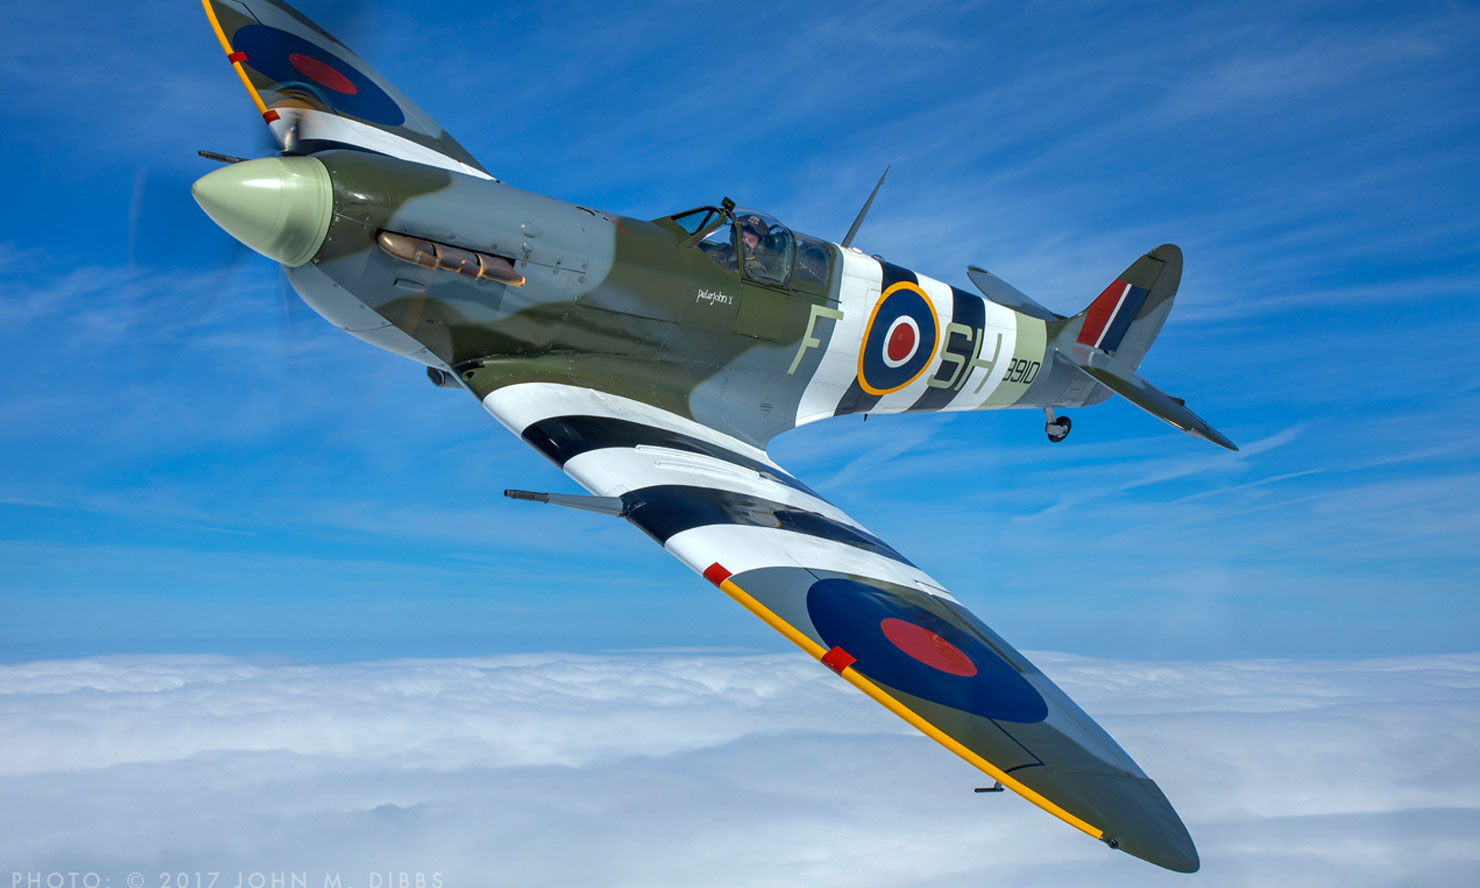 Clacton Airshow – The Offical Website for Clacton Airshow